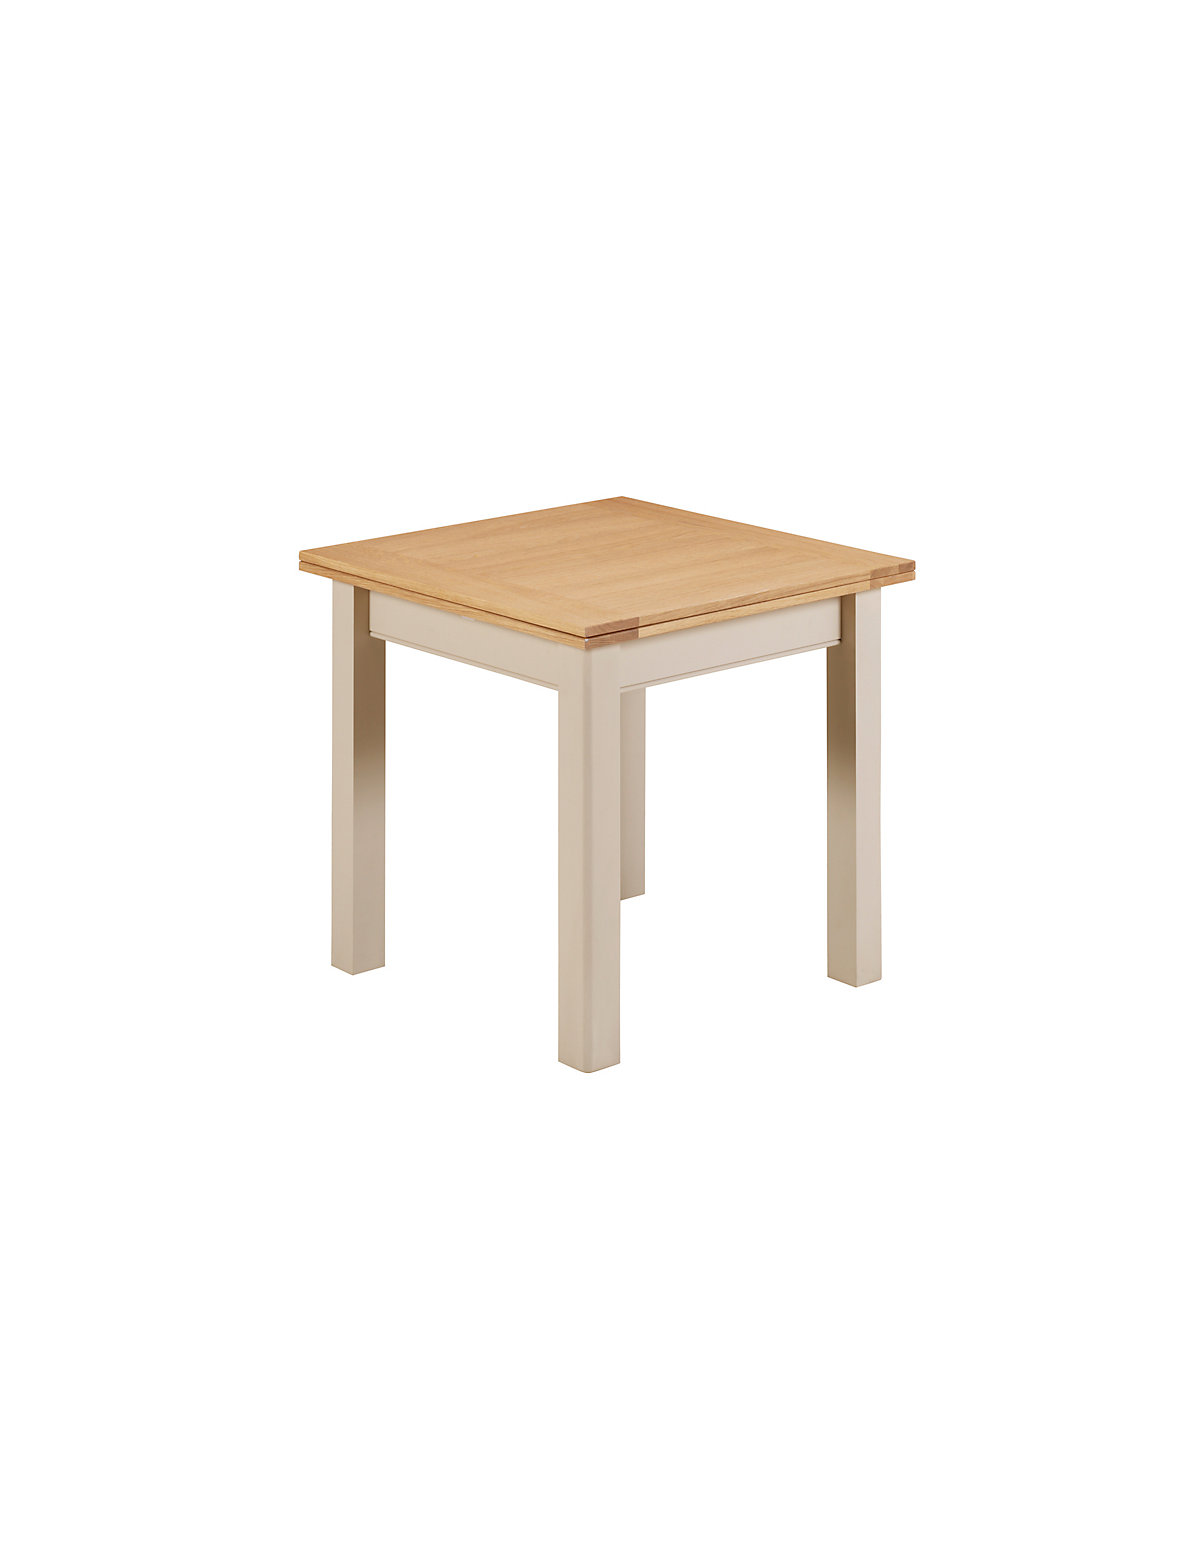 Buy cheap square extending dining table compare for Best deals on dining tables and chairs